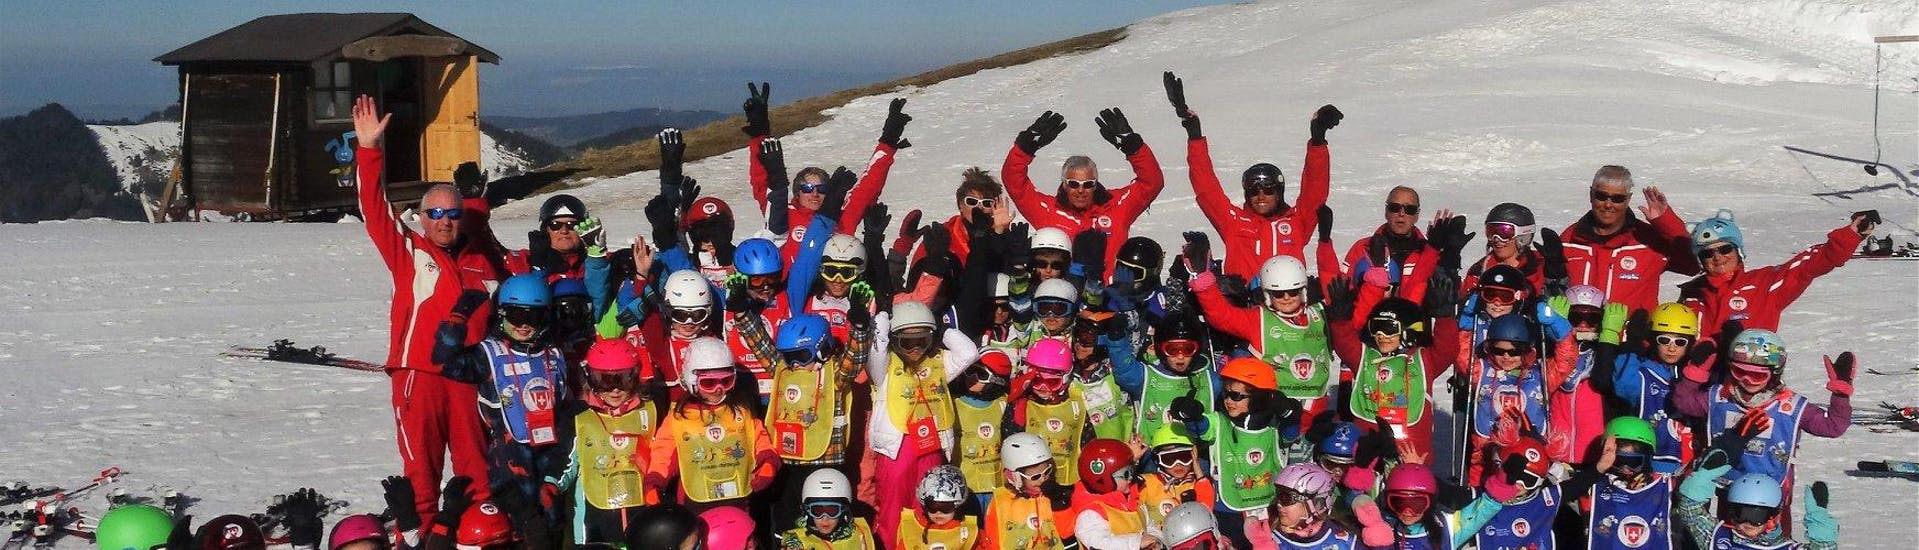 Students from the the swiss ski school Charmey and their ski instructors are gathered for a group photo celebrating their Kids Ski Lessons (6-15 years) - 4 lessons - All Levels.